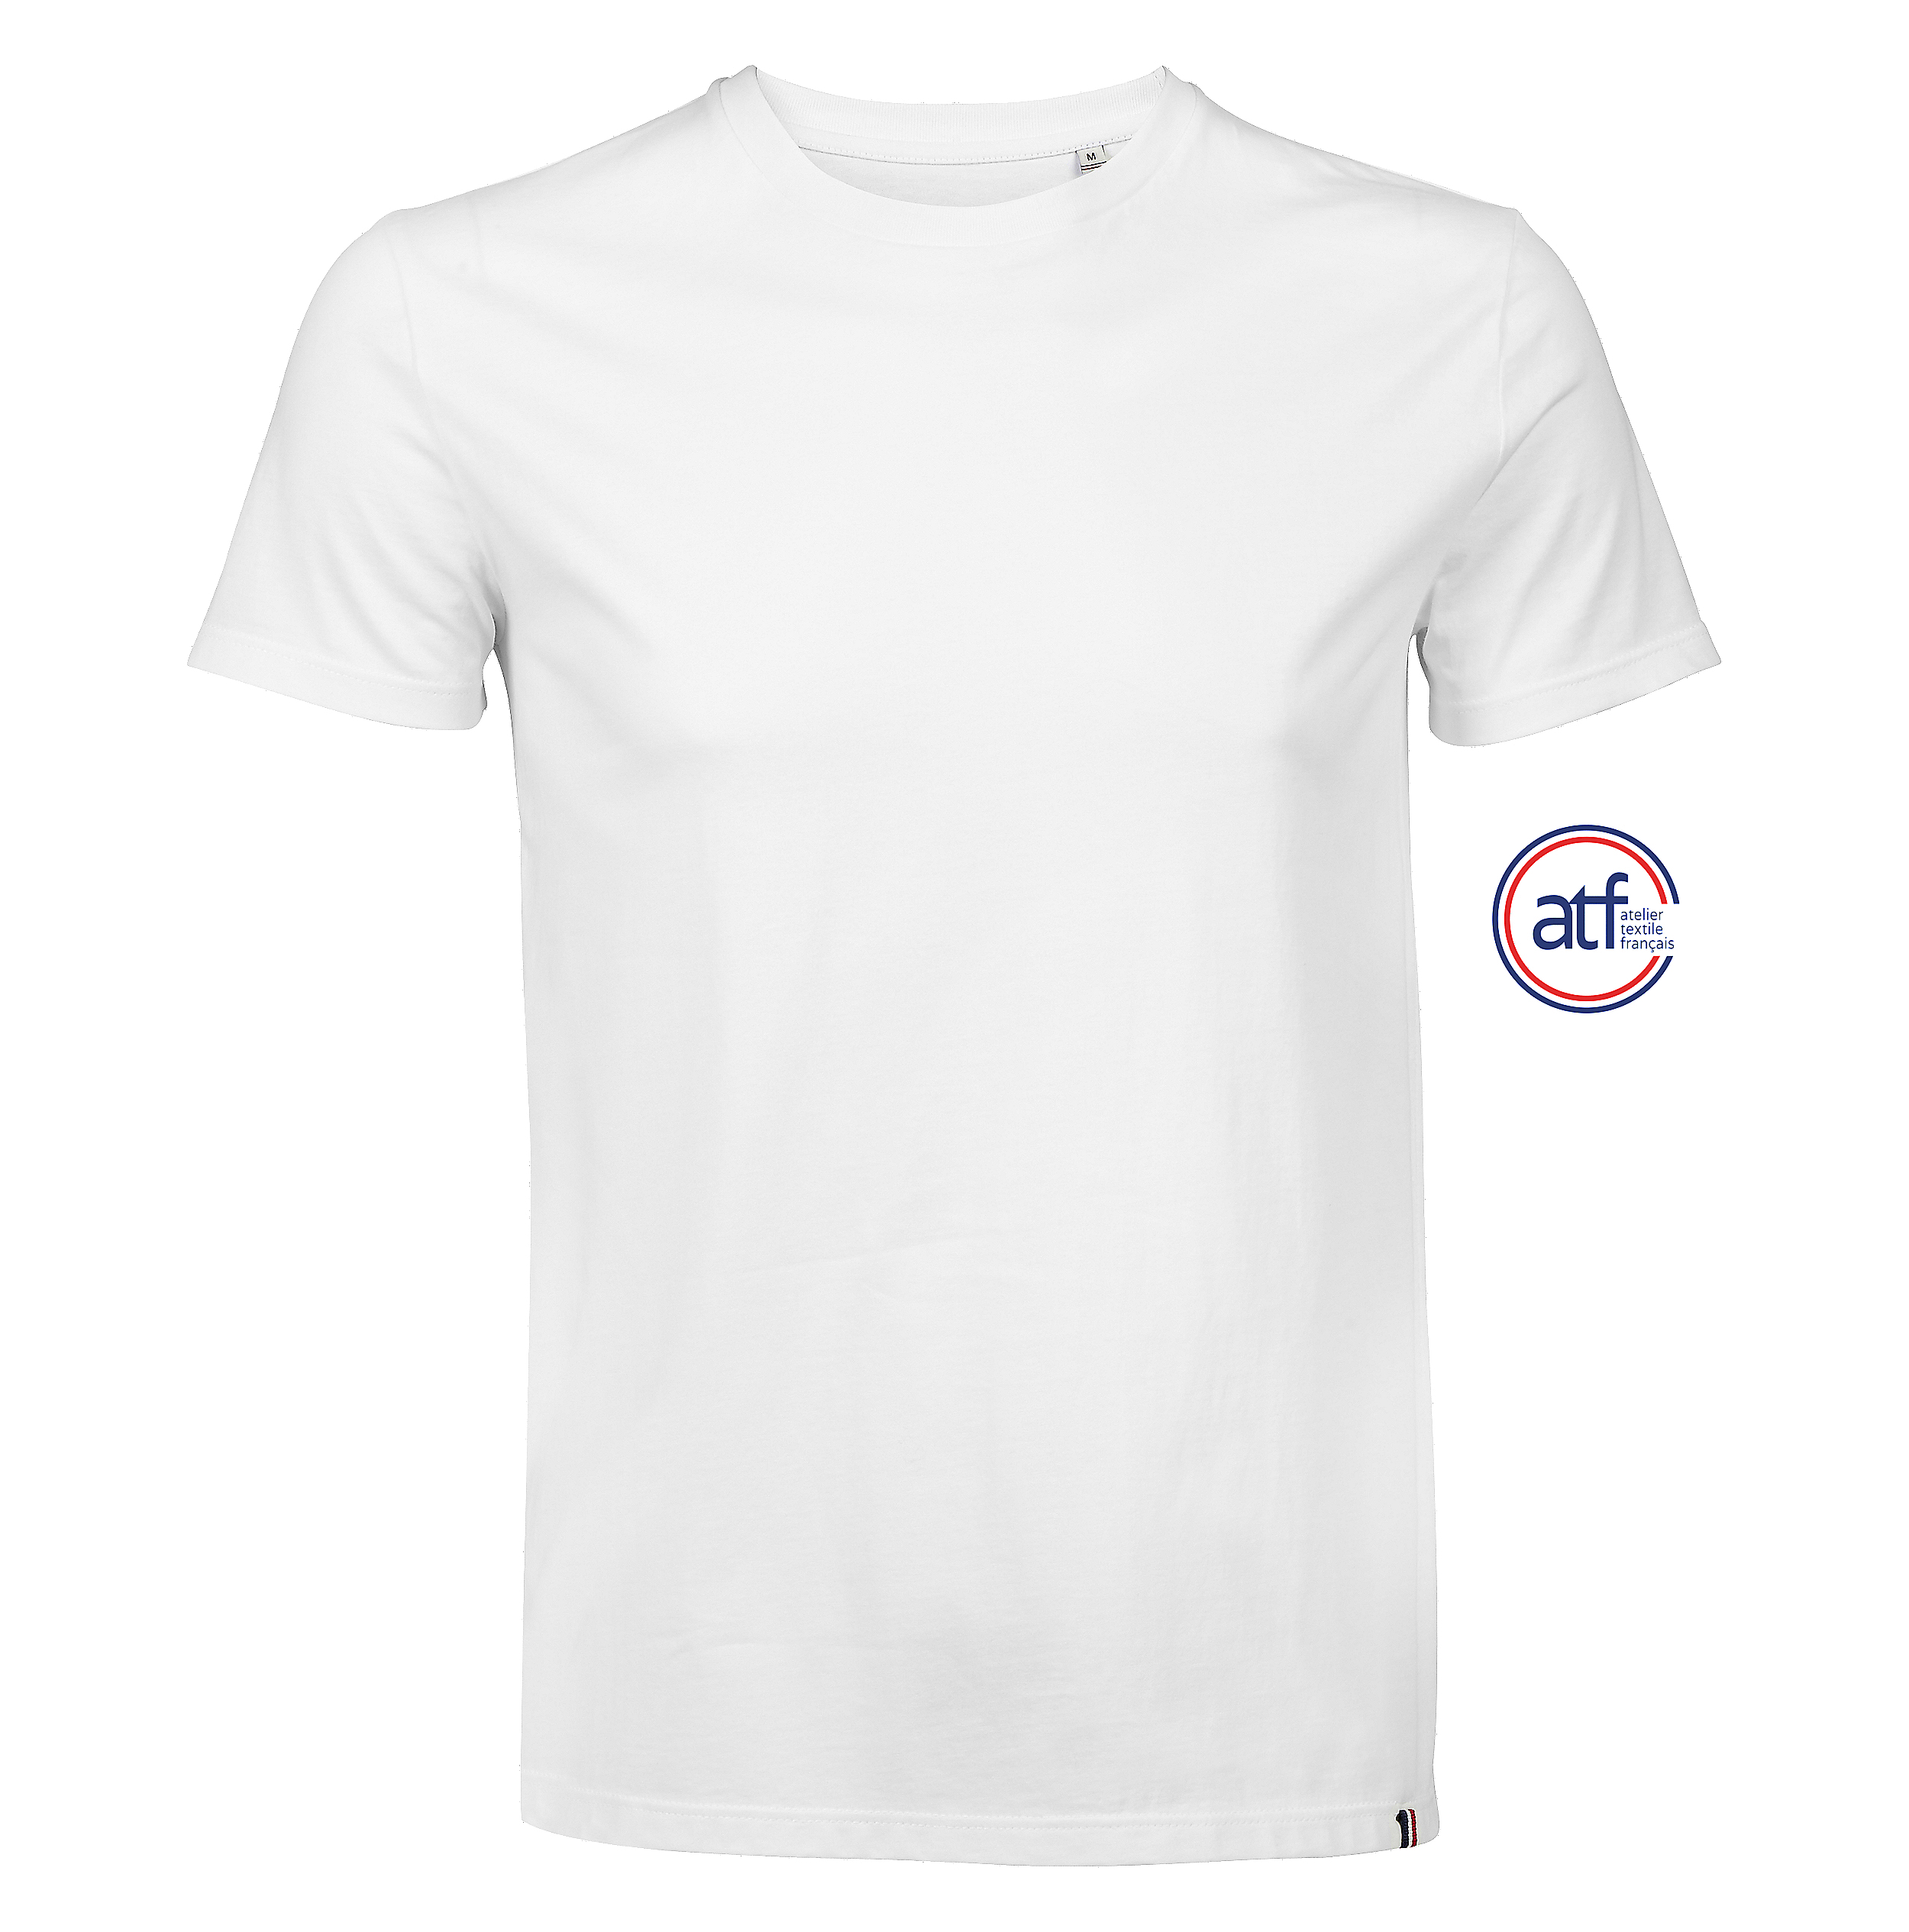 Tee-shirt homme col rond made in France Lino